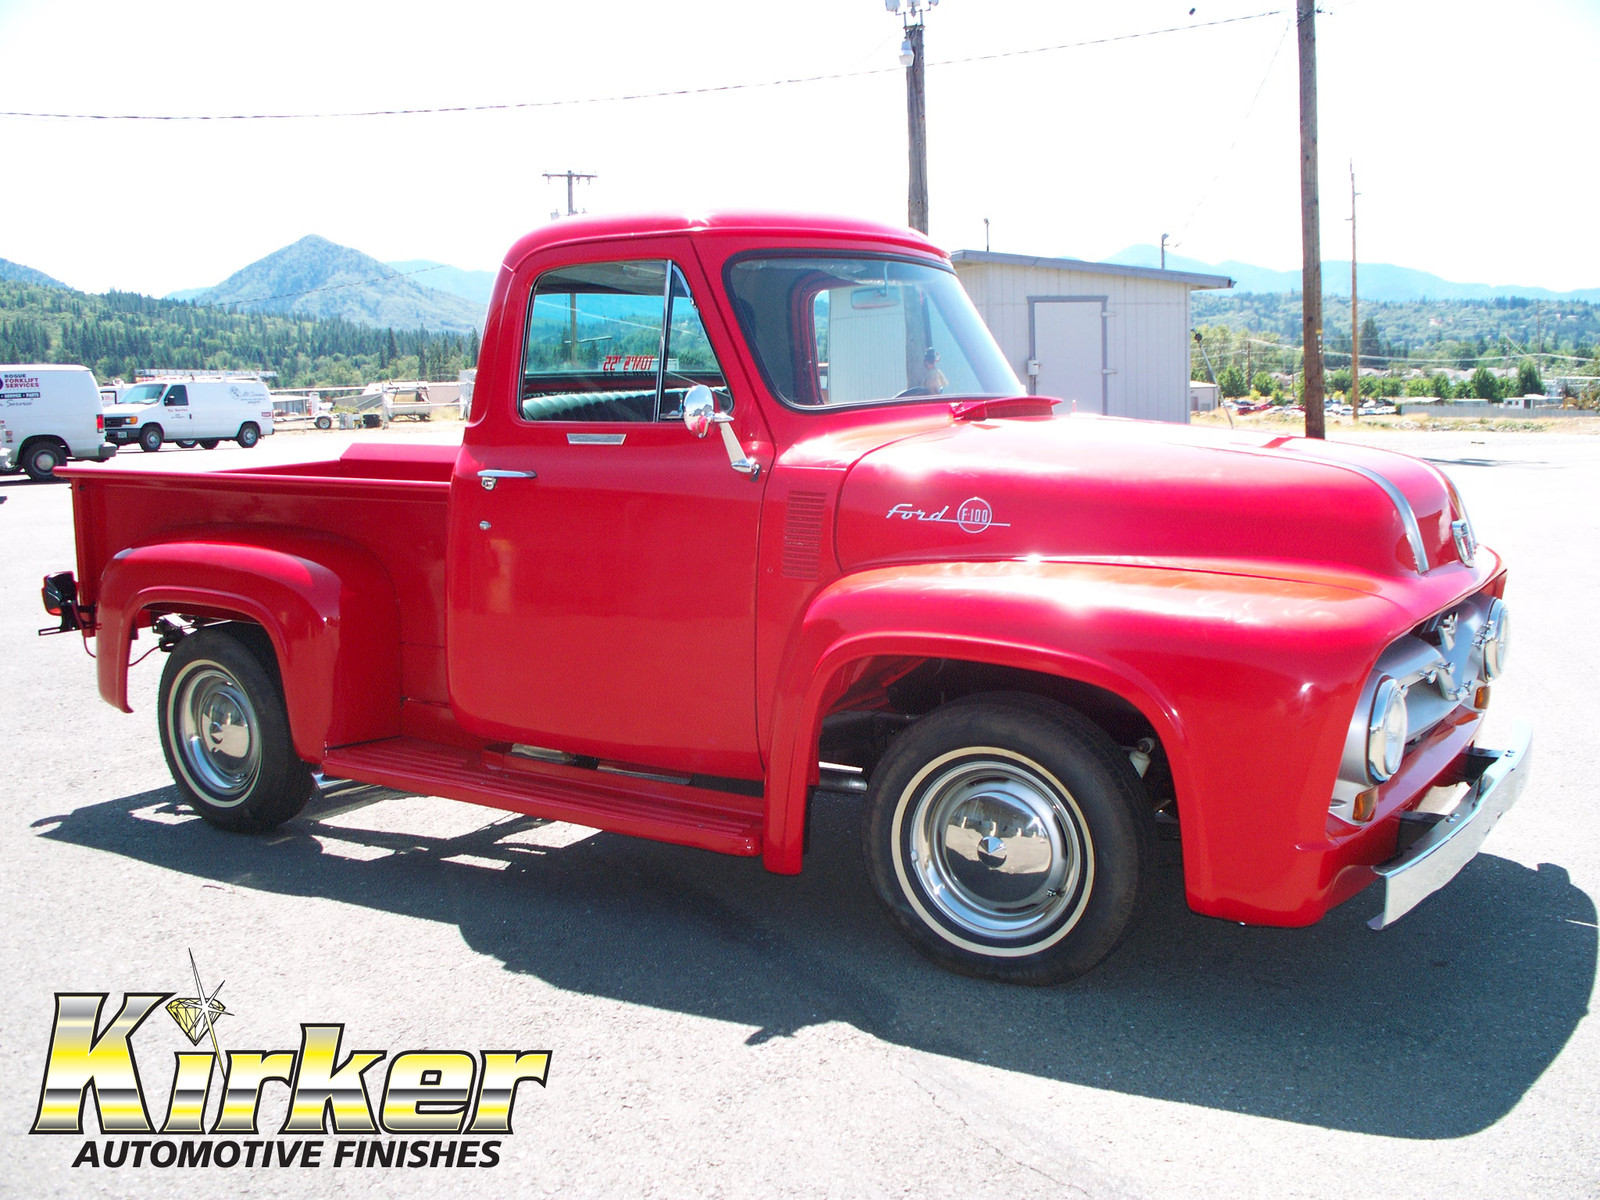 Kirker Automotive Finishes Refinish Materials Newburgh Ny Usa 1955 Ford F100 Stepside Pickup Viper Red 51439